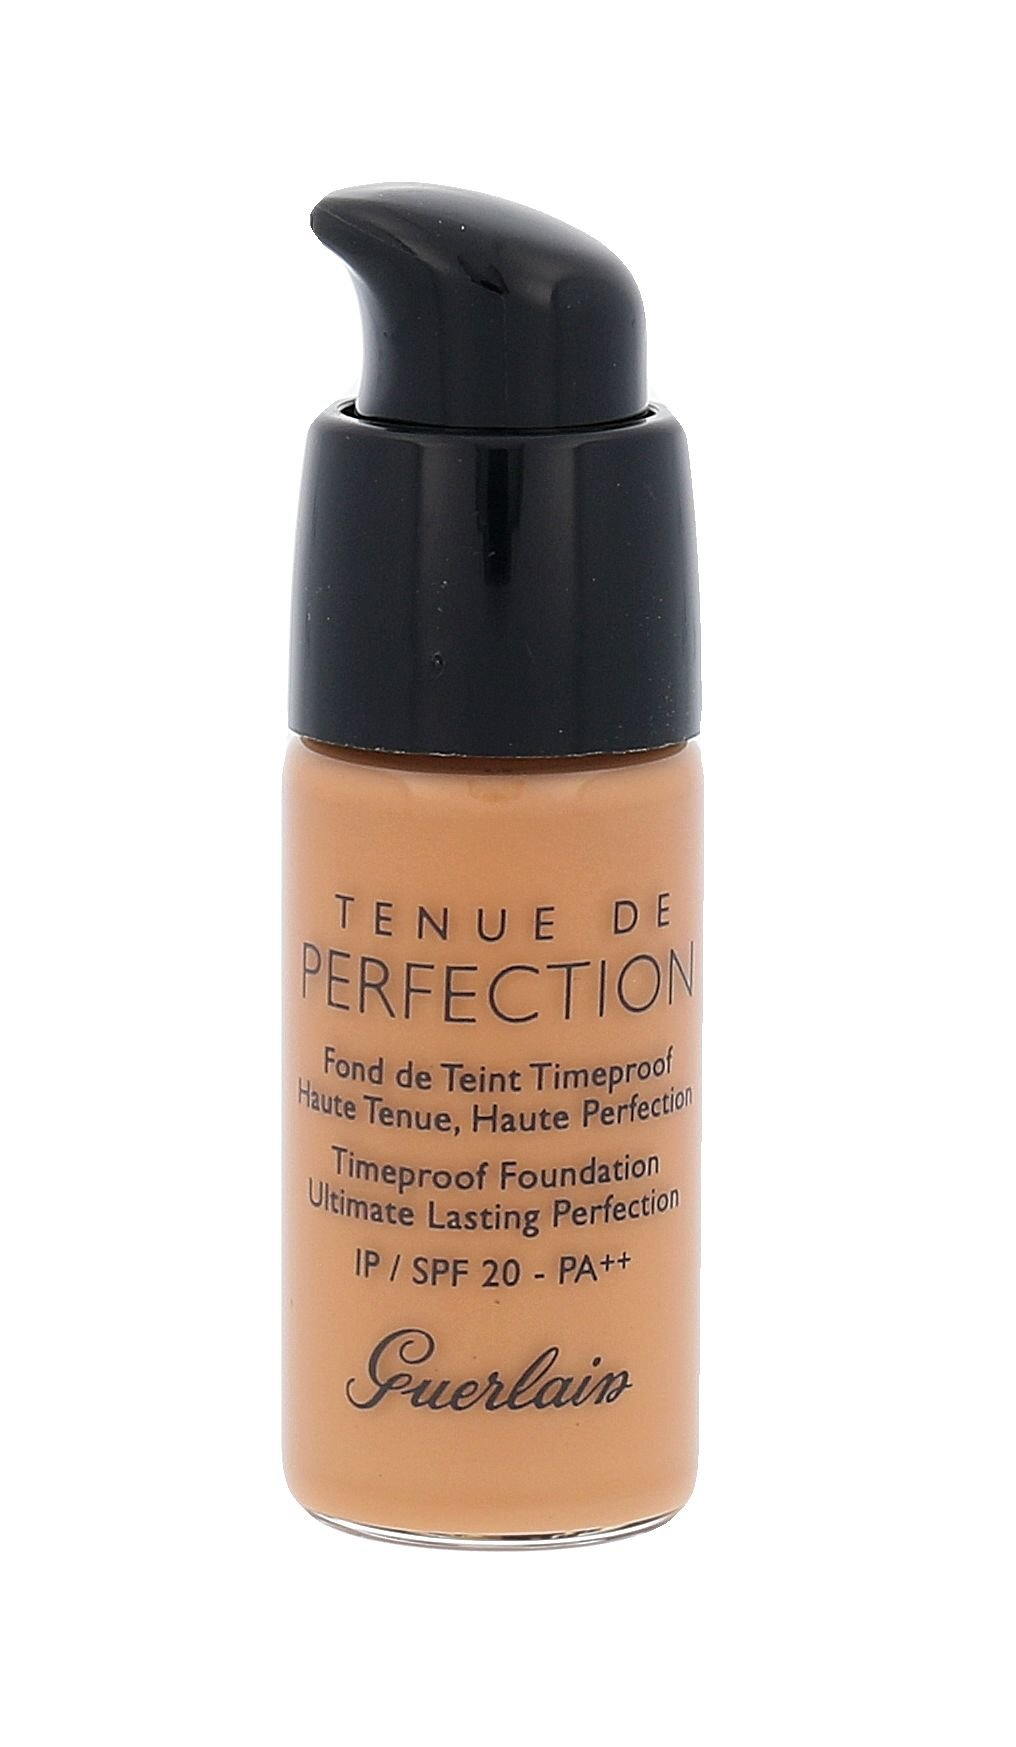 Guerlain Tenue De Perfection Cosmetic 15ml 23 Doré Naturel